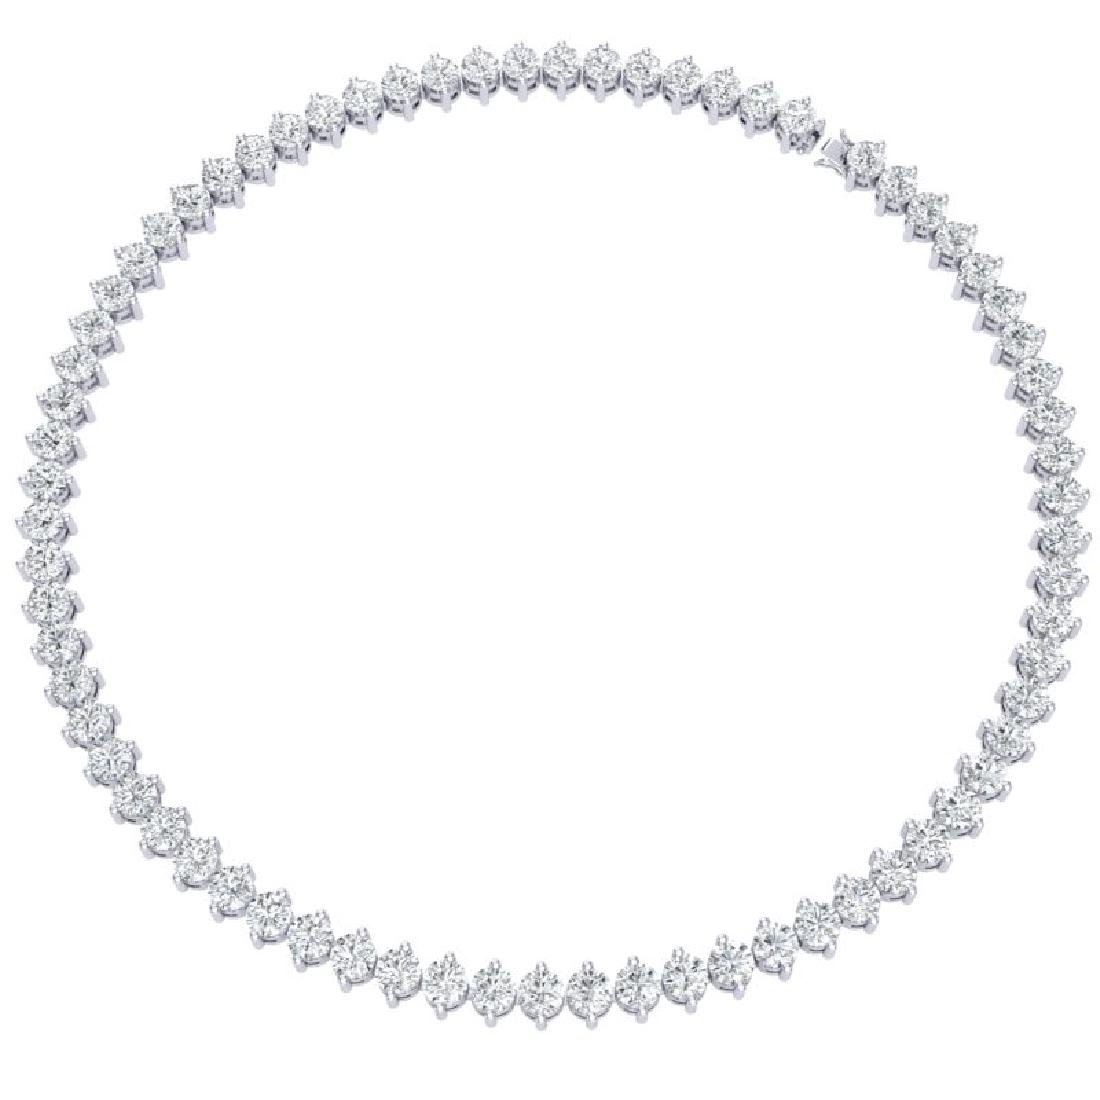 45 CTW Certified SI/I Diamond Necklace 18K White Gold - 3